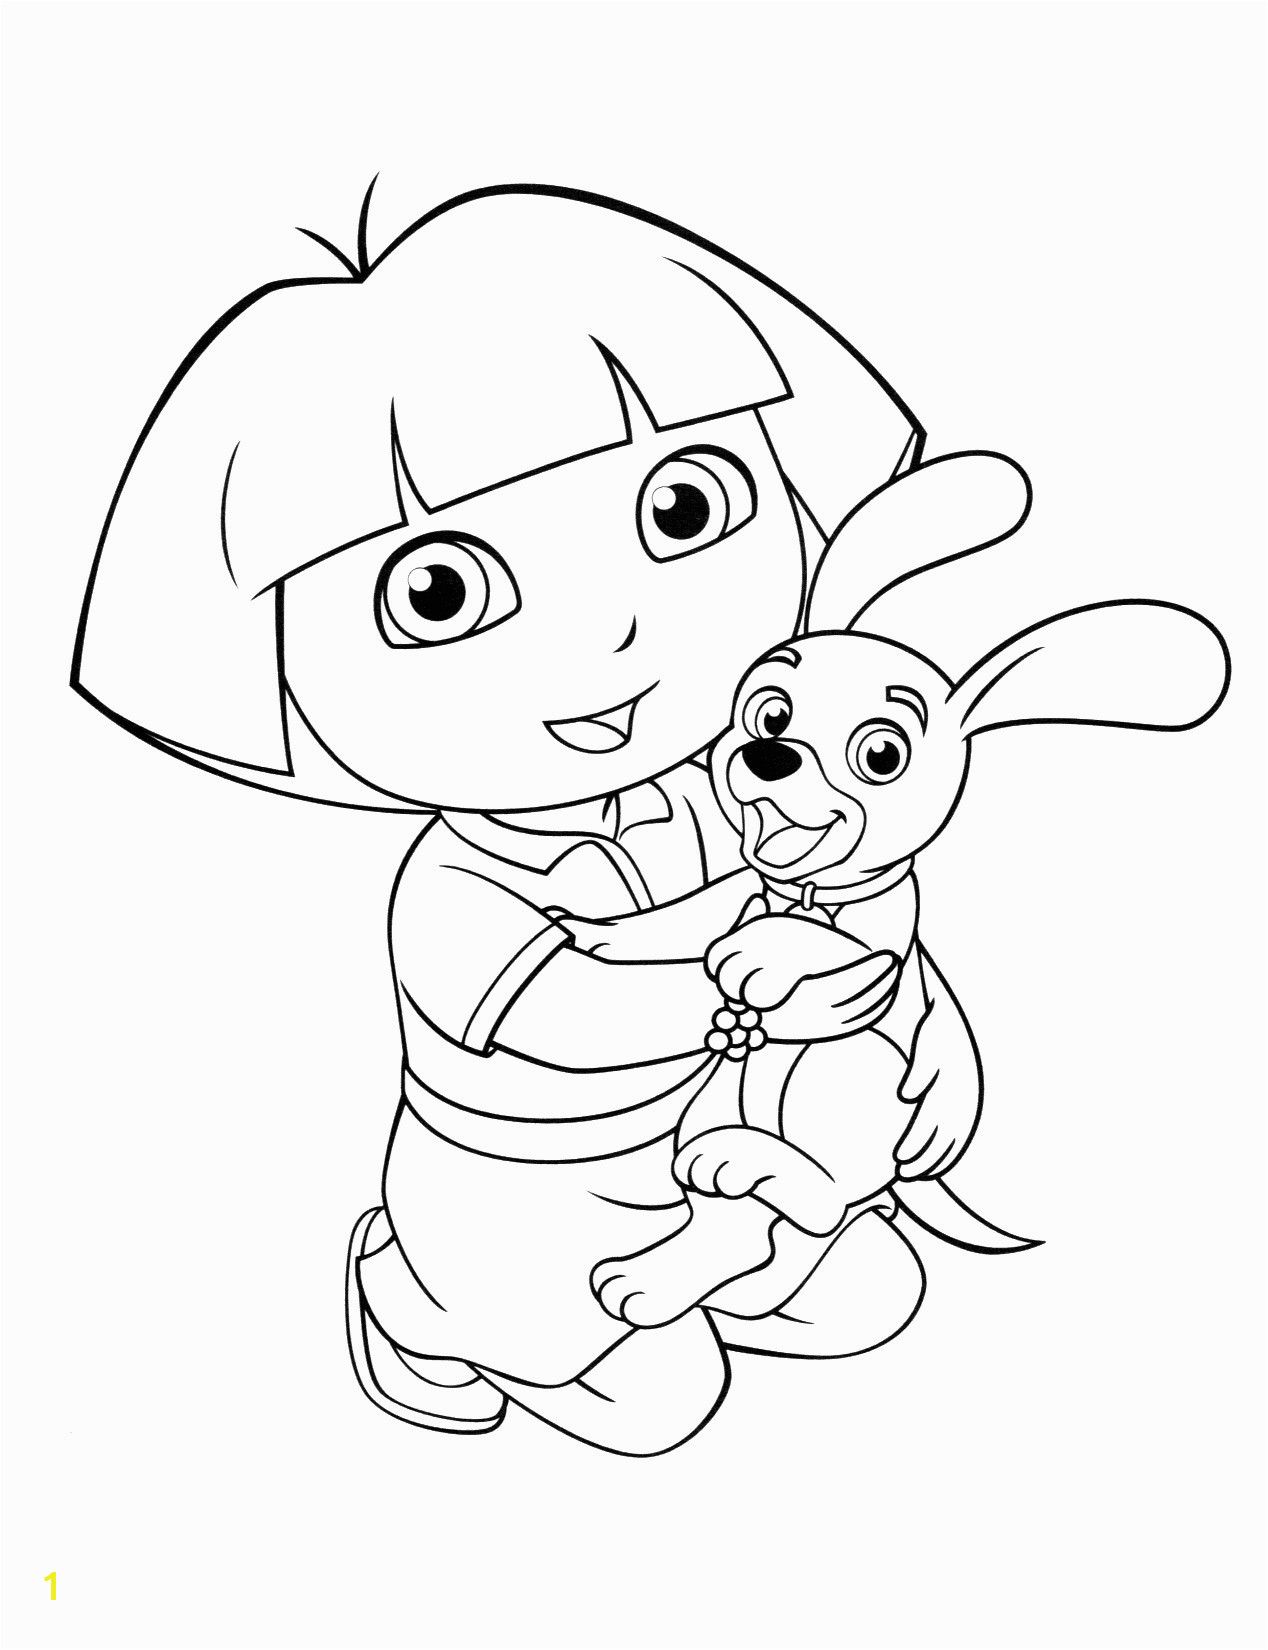 Dog Coloring Pages Games Fresh Dora Colouring Sheets Pdf Printable Dora And Friends Christmas